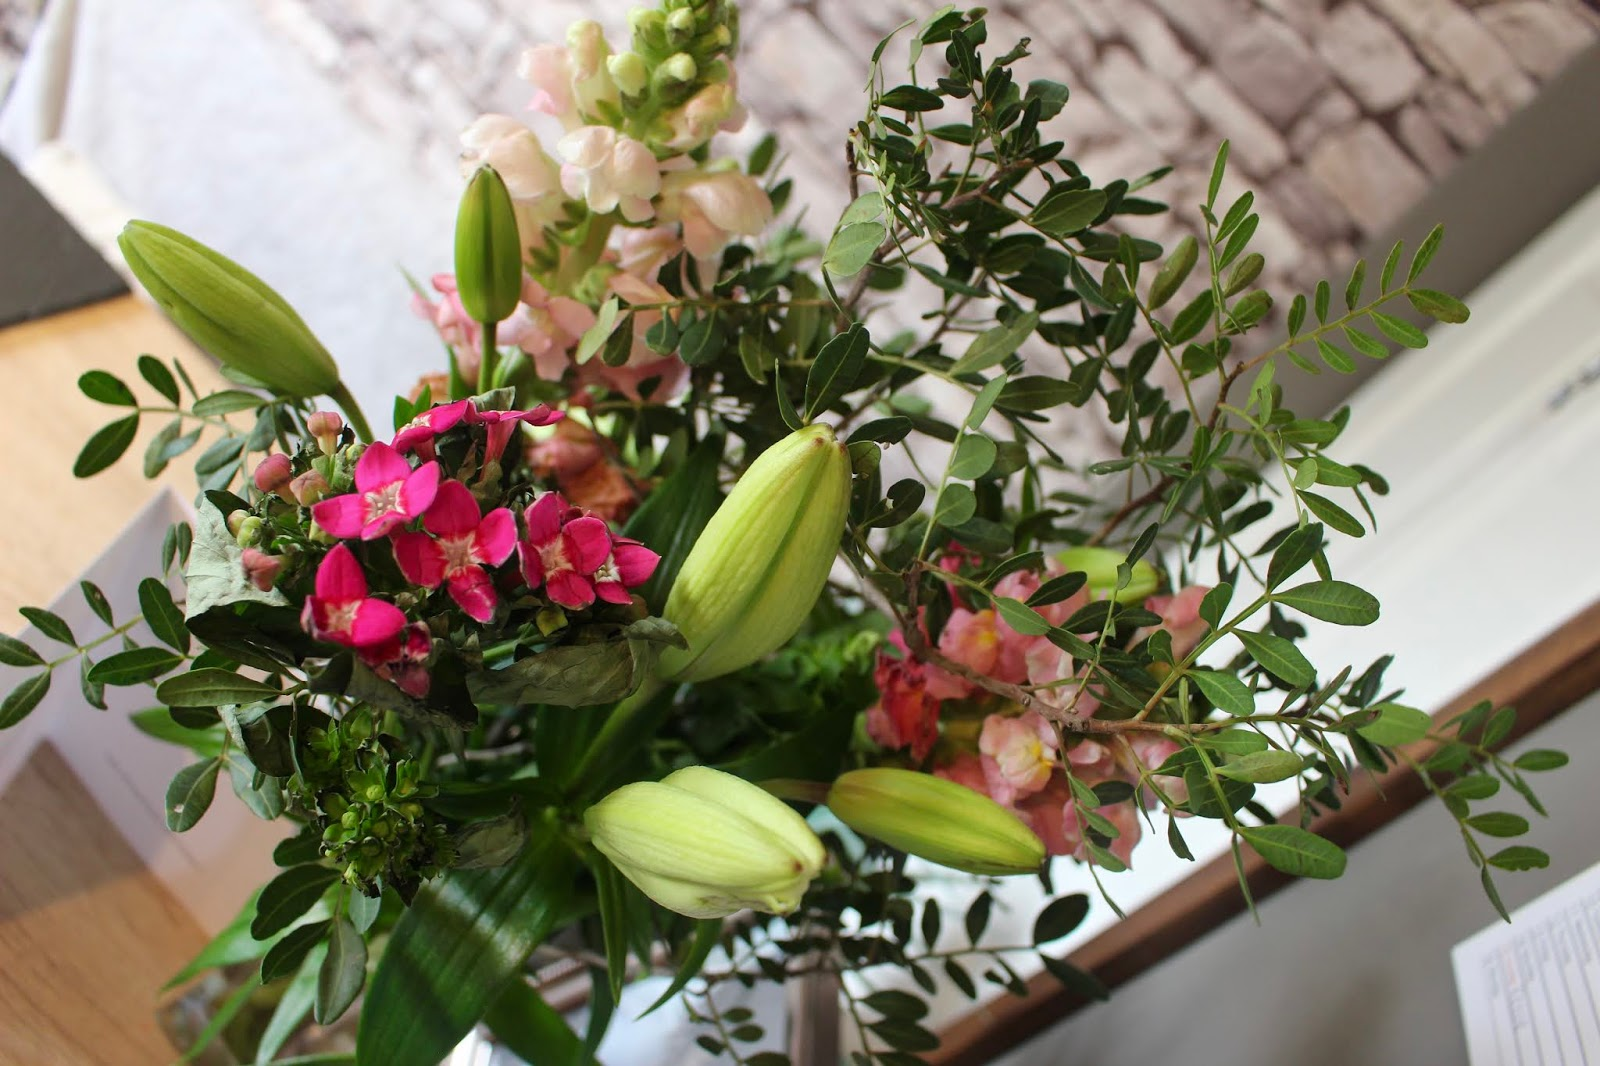 Mothers day flowers from Moonpig.